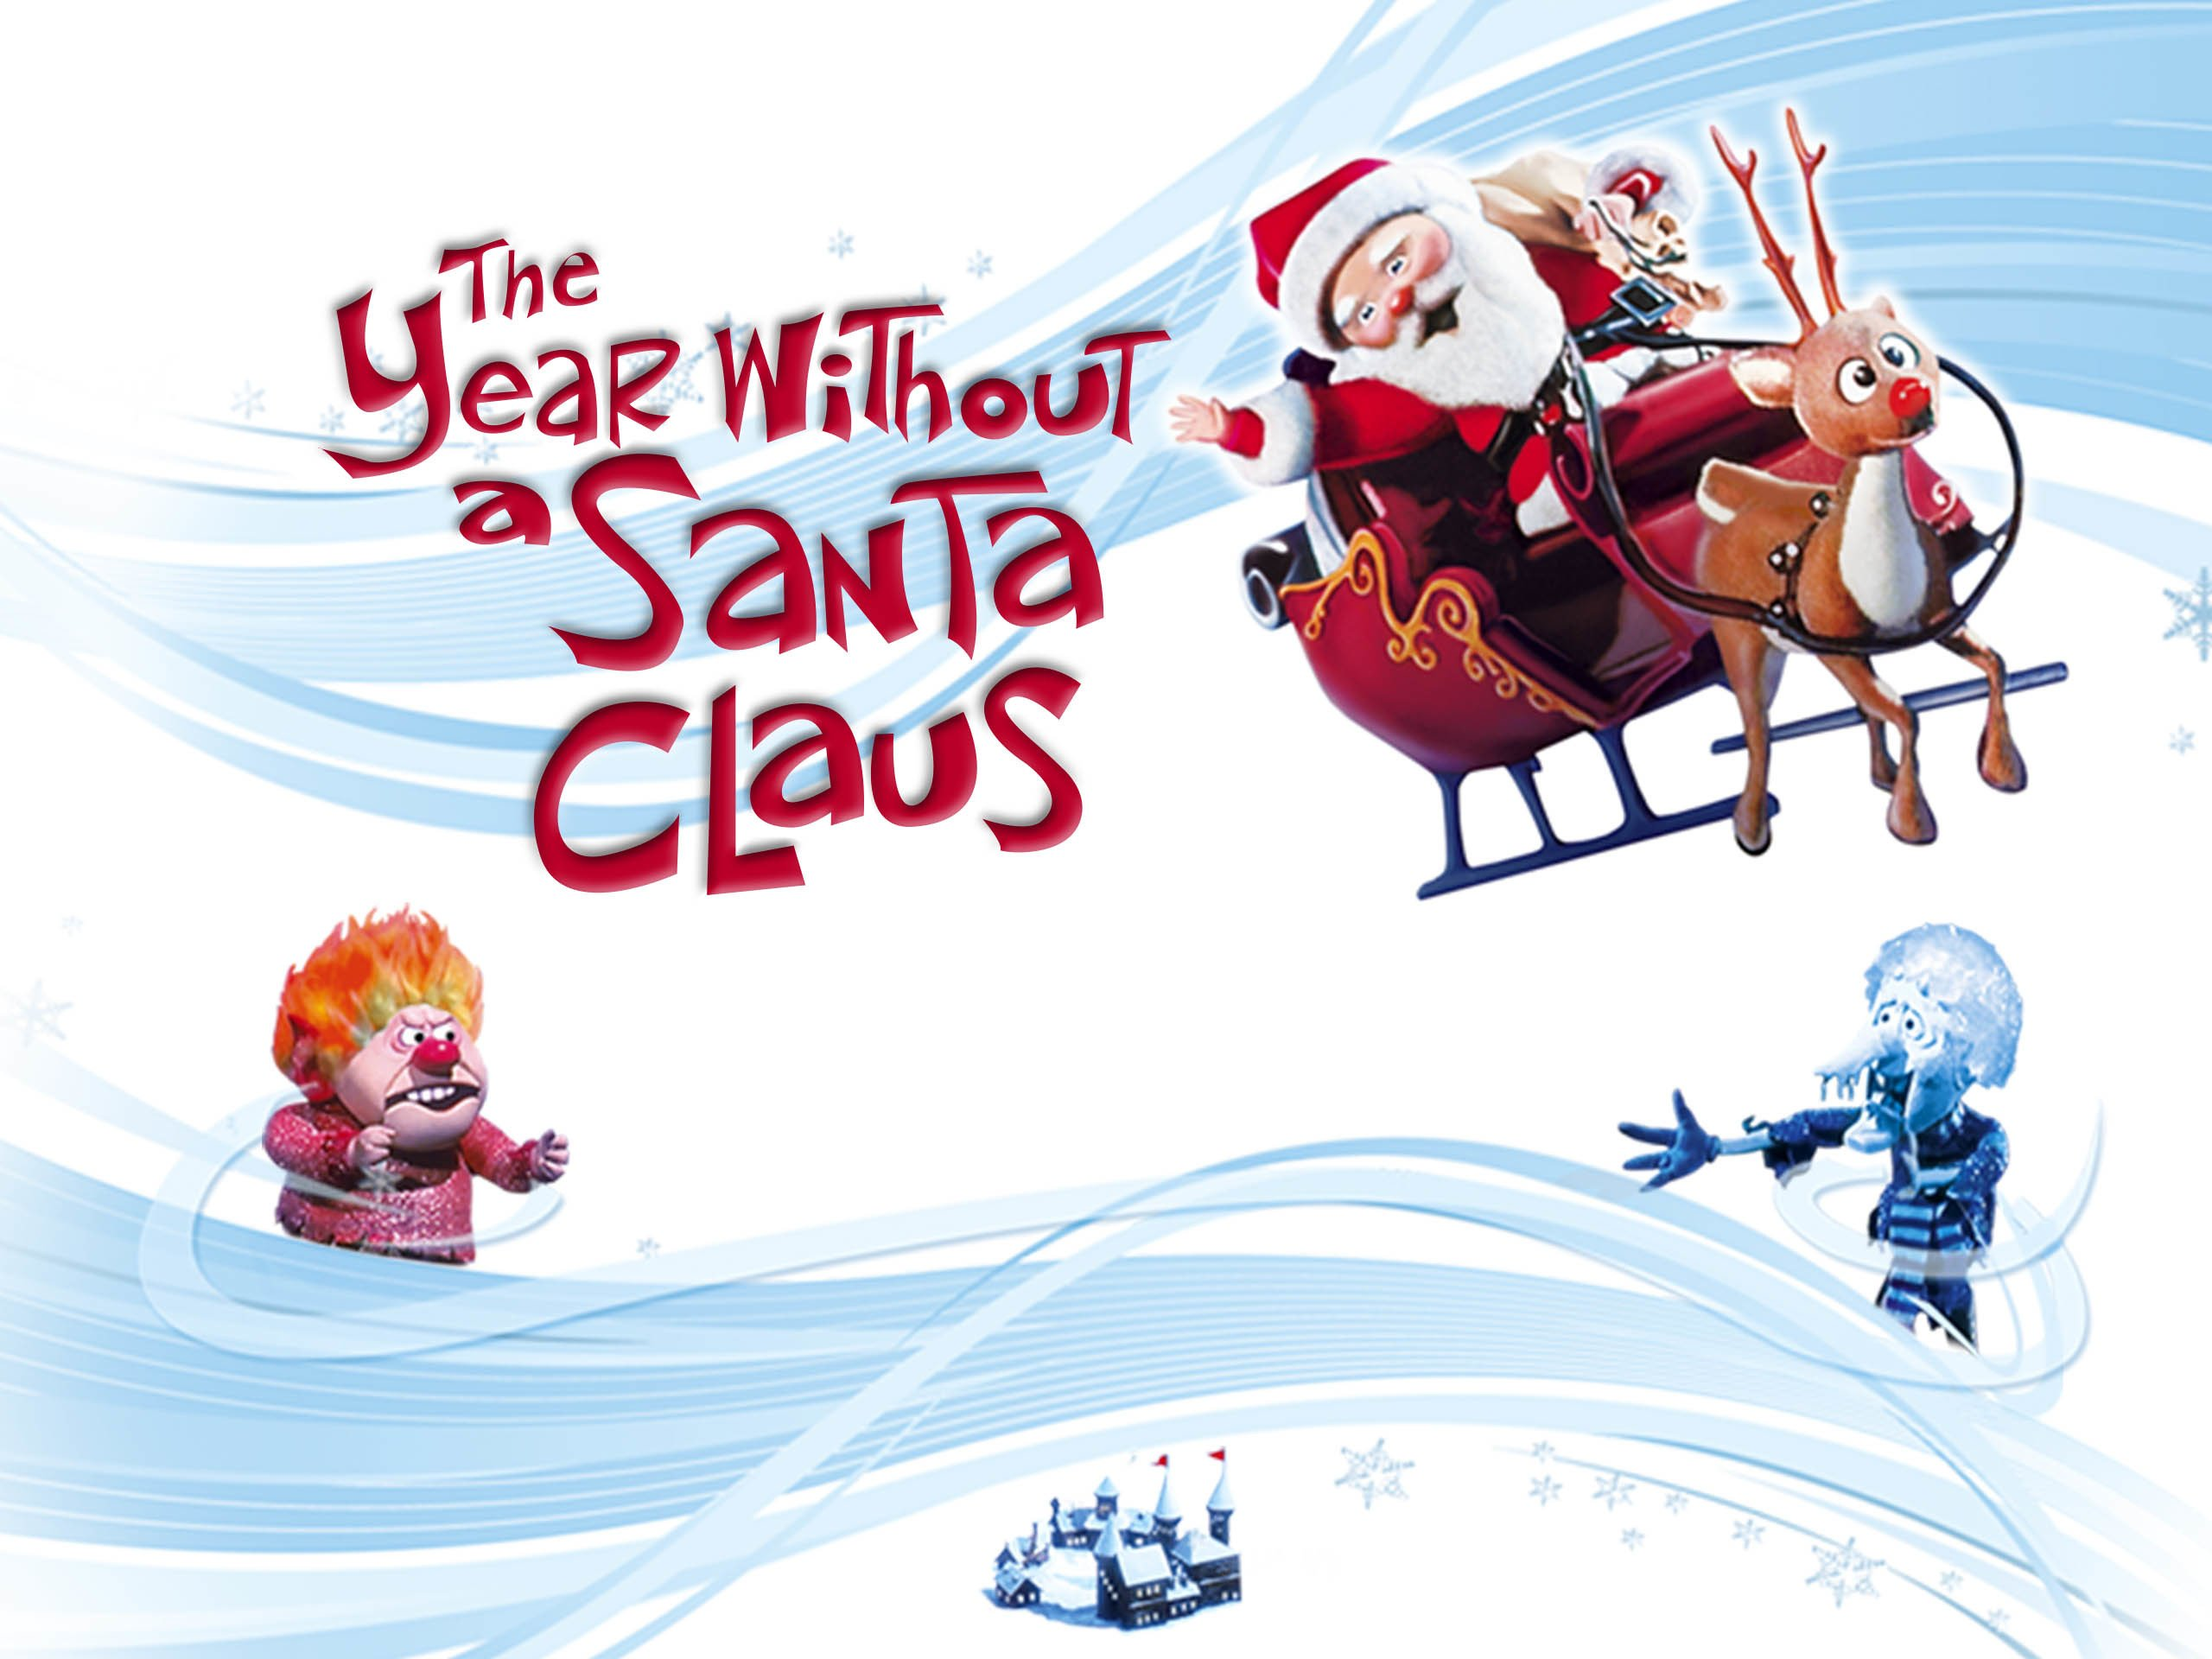 amazoncom the year without a santa claus - Santa Claus Santa Claus Santa Claus